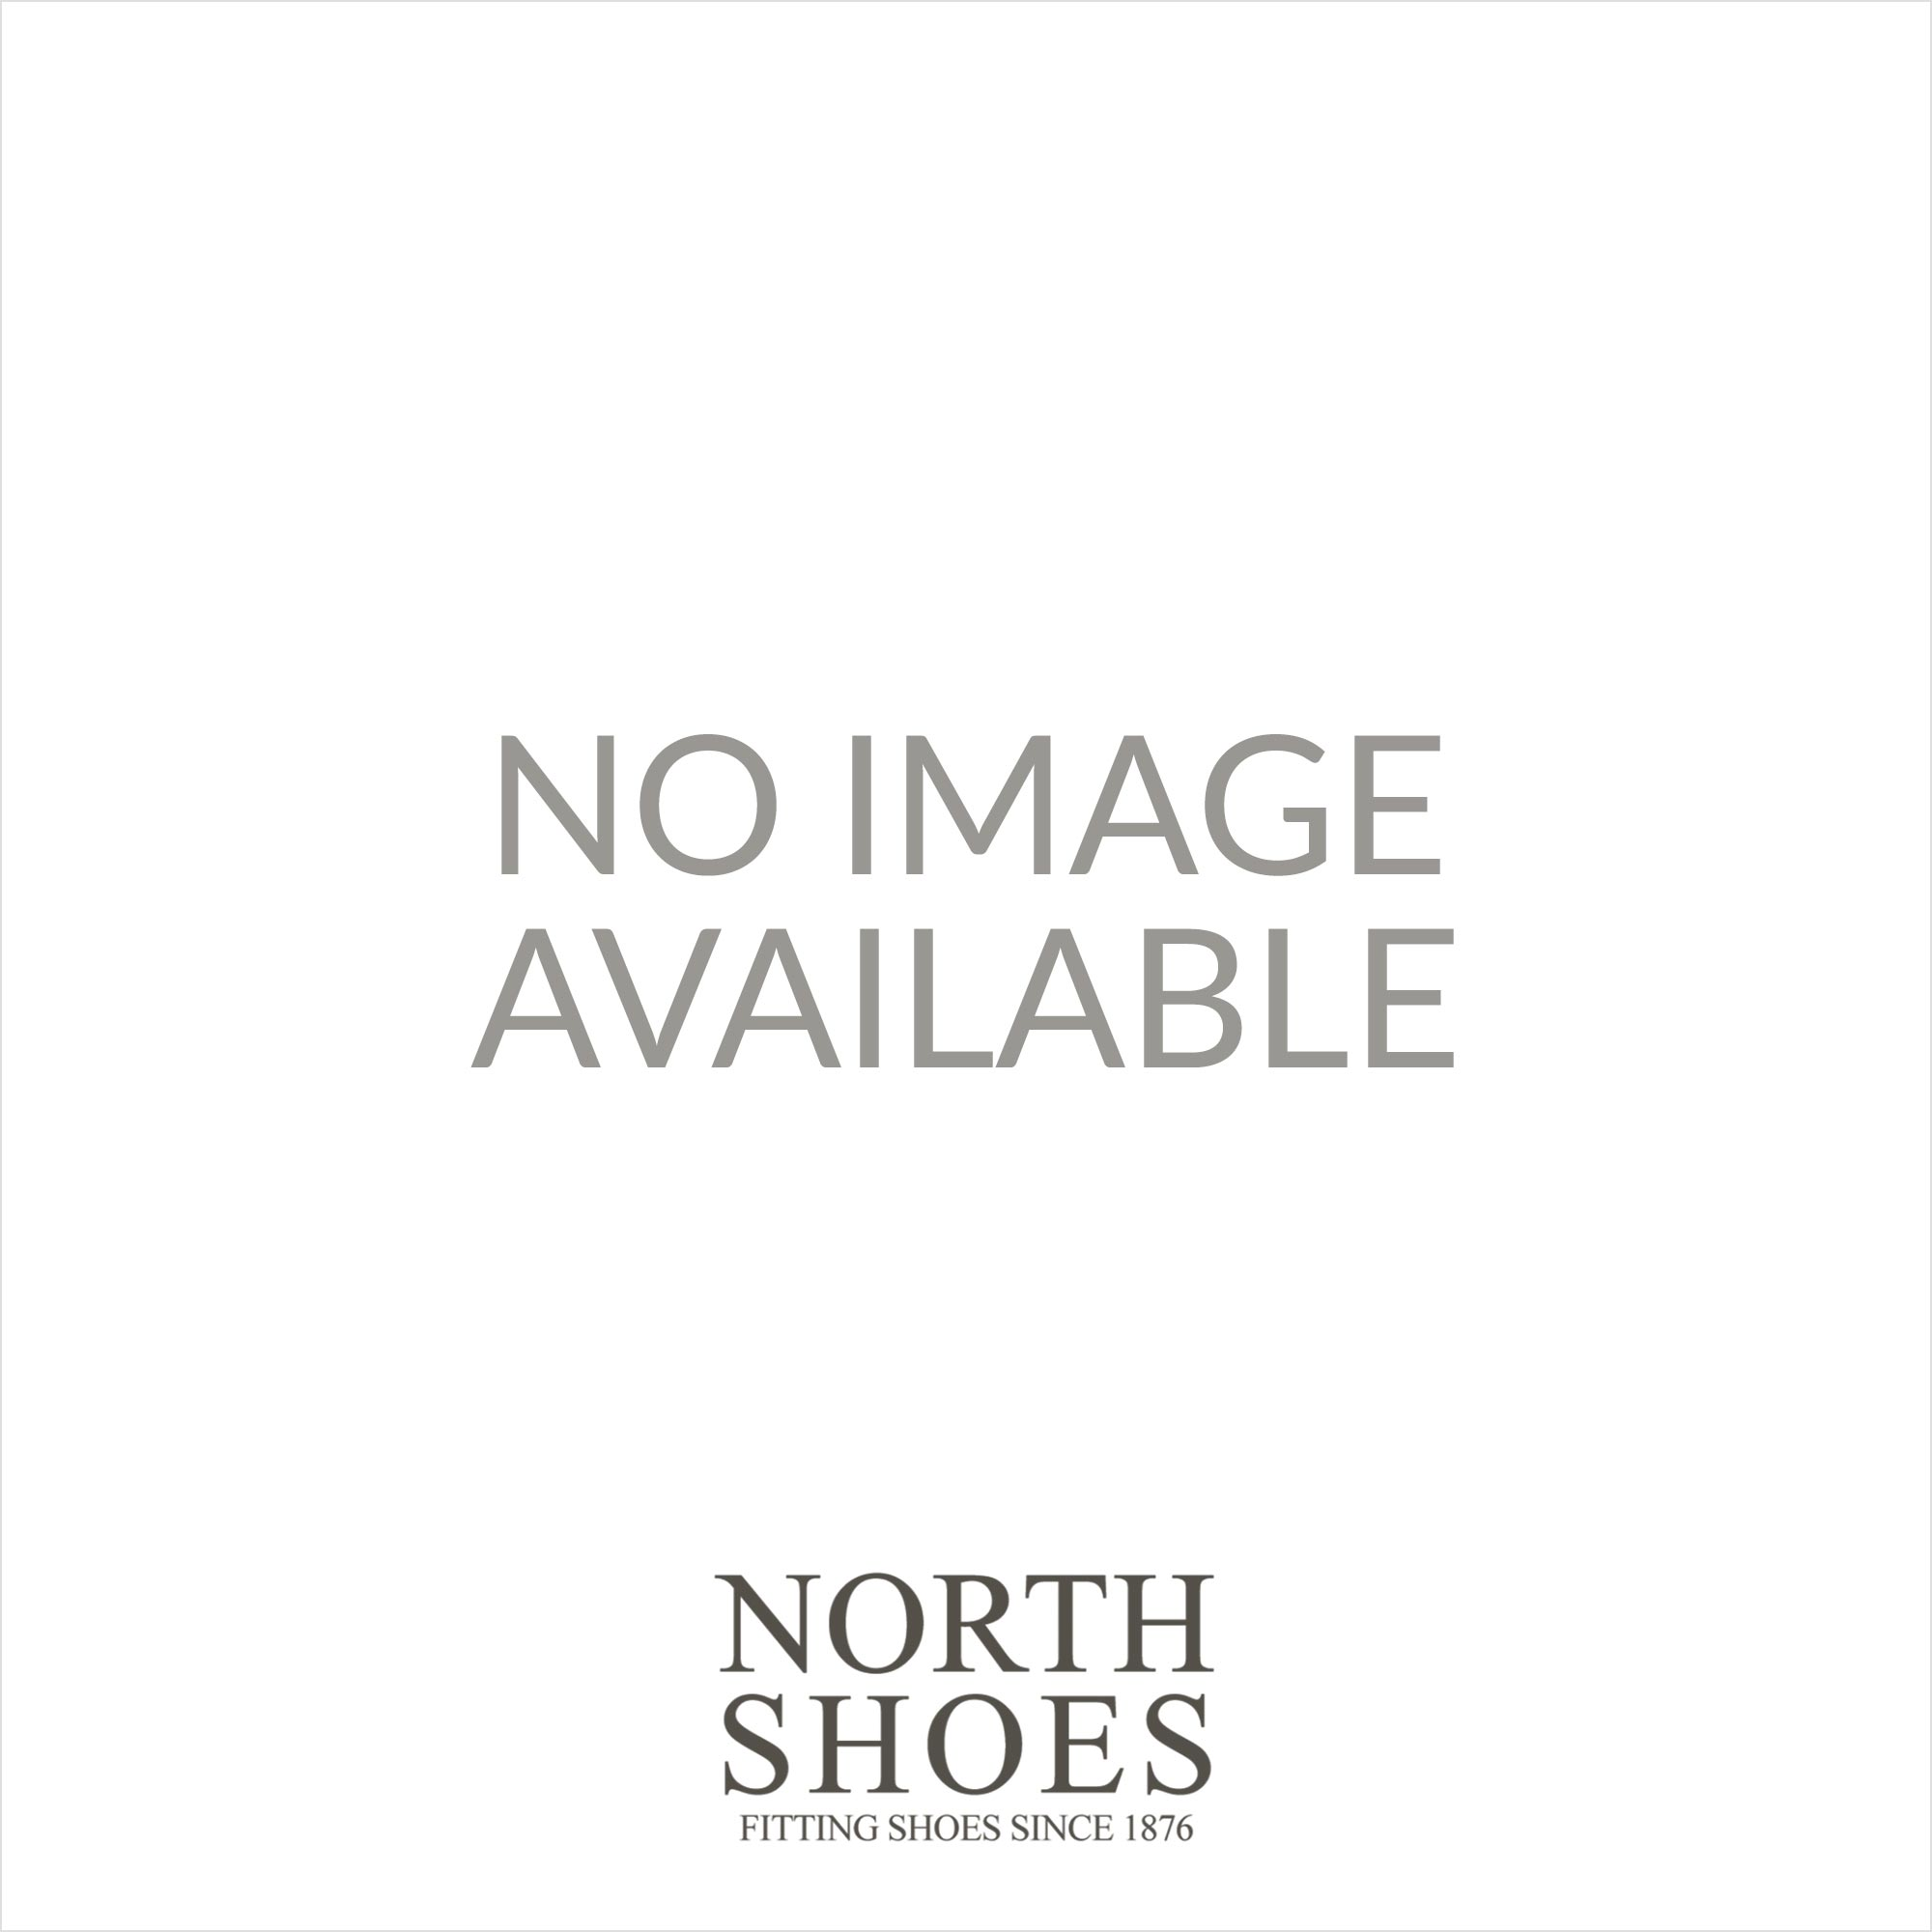 c1ec2b700d Clarks Temira Compass Grenadine Orange Leather Womens Strappy Wedge Heel  Sandal - Clarks from North Shoes UK